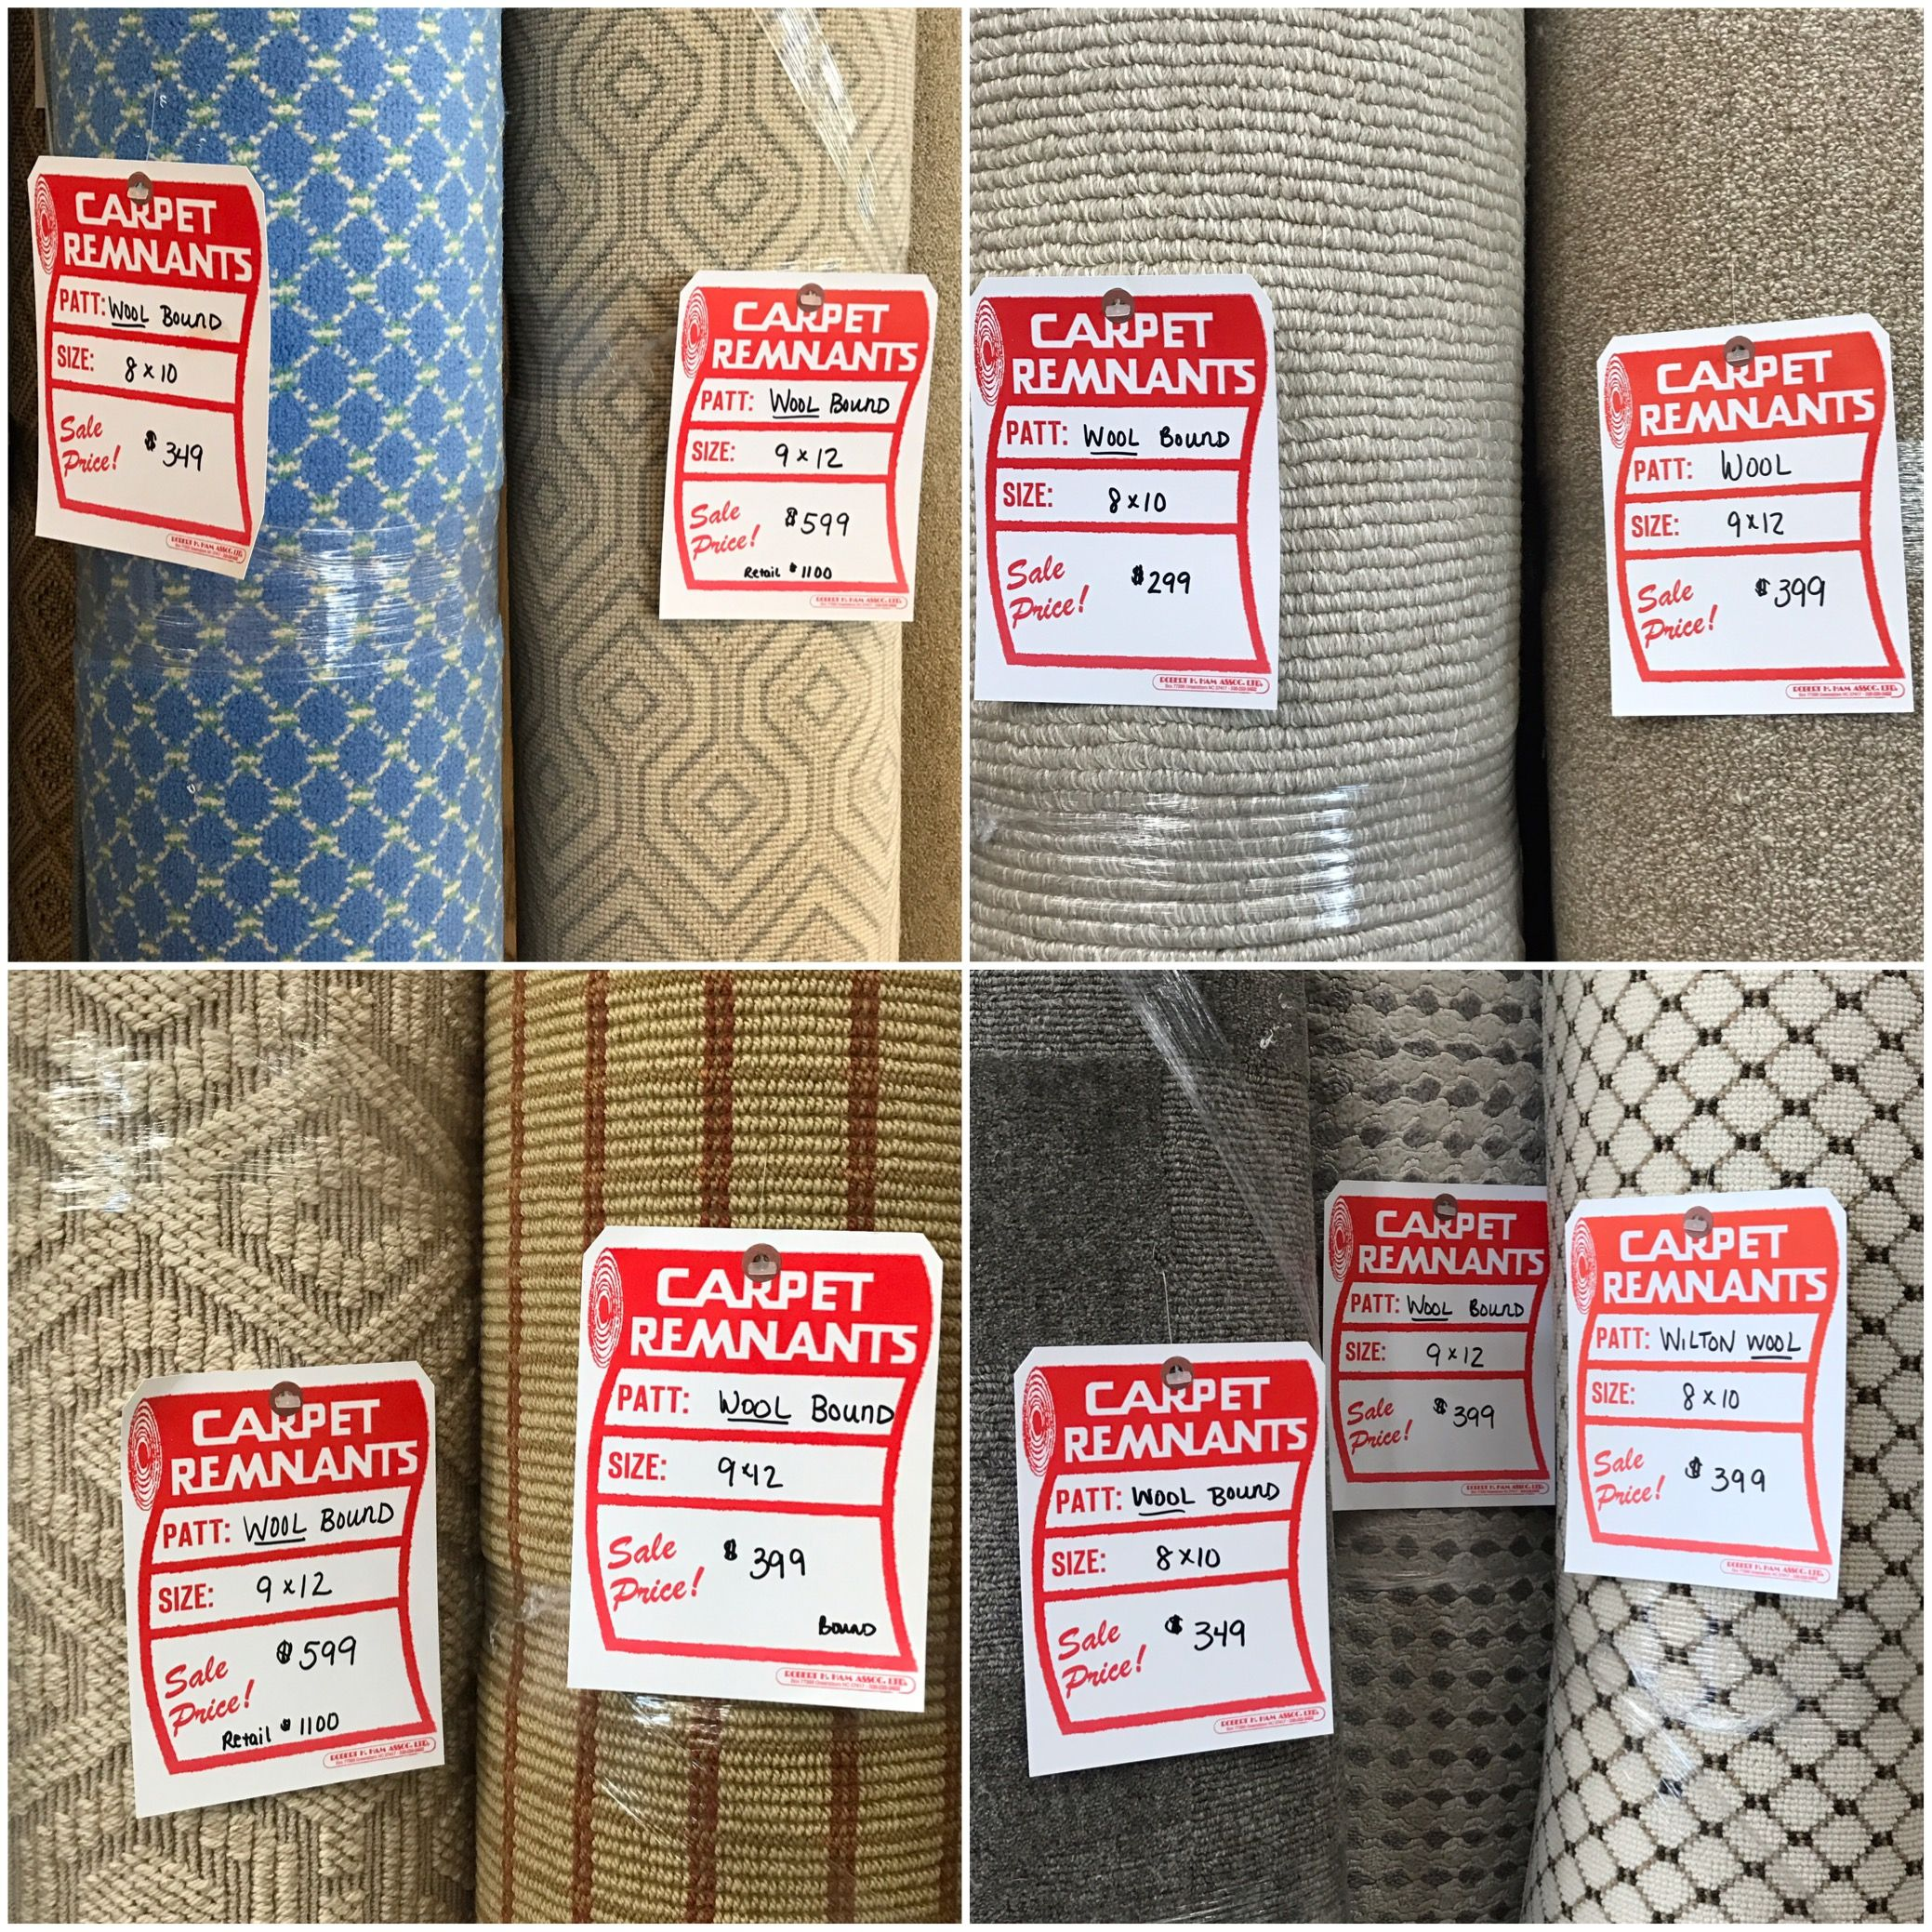 Just Arrived! Bound Wool Area Rugs, 8x10 & 9x12